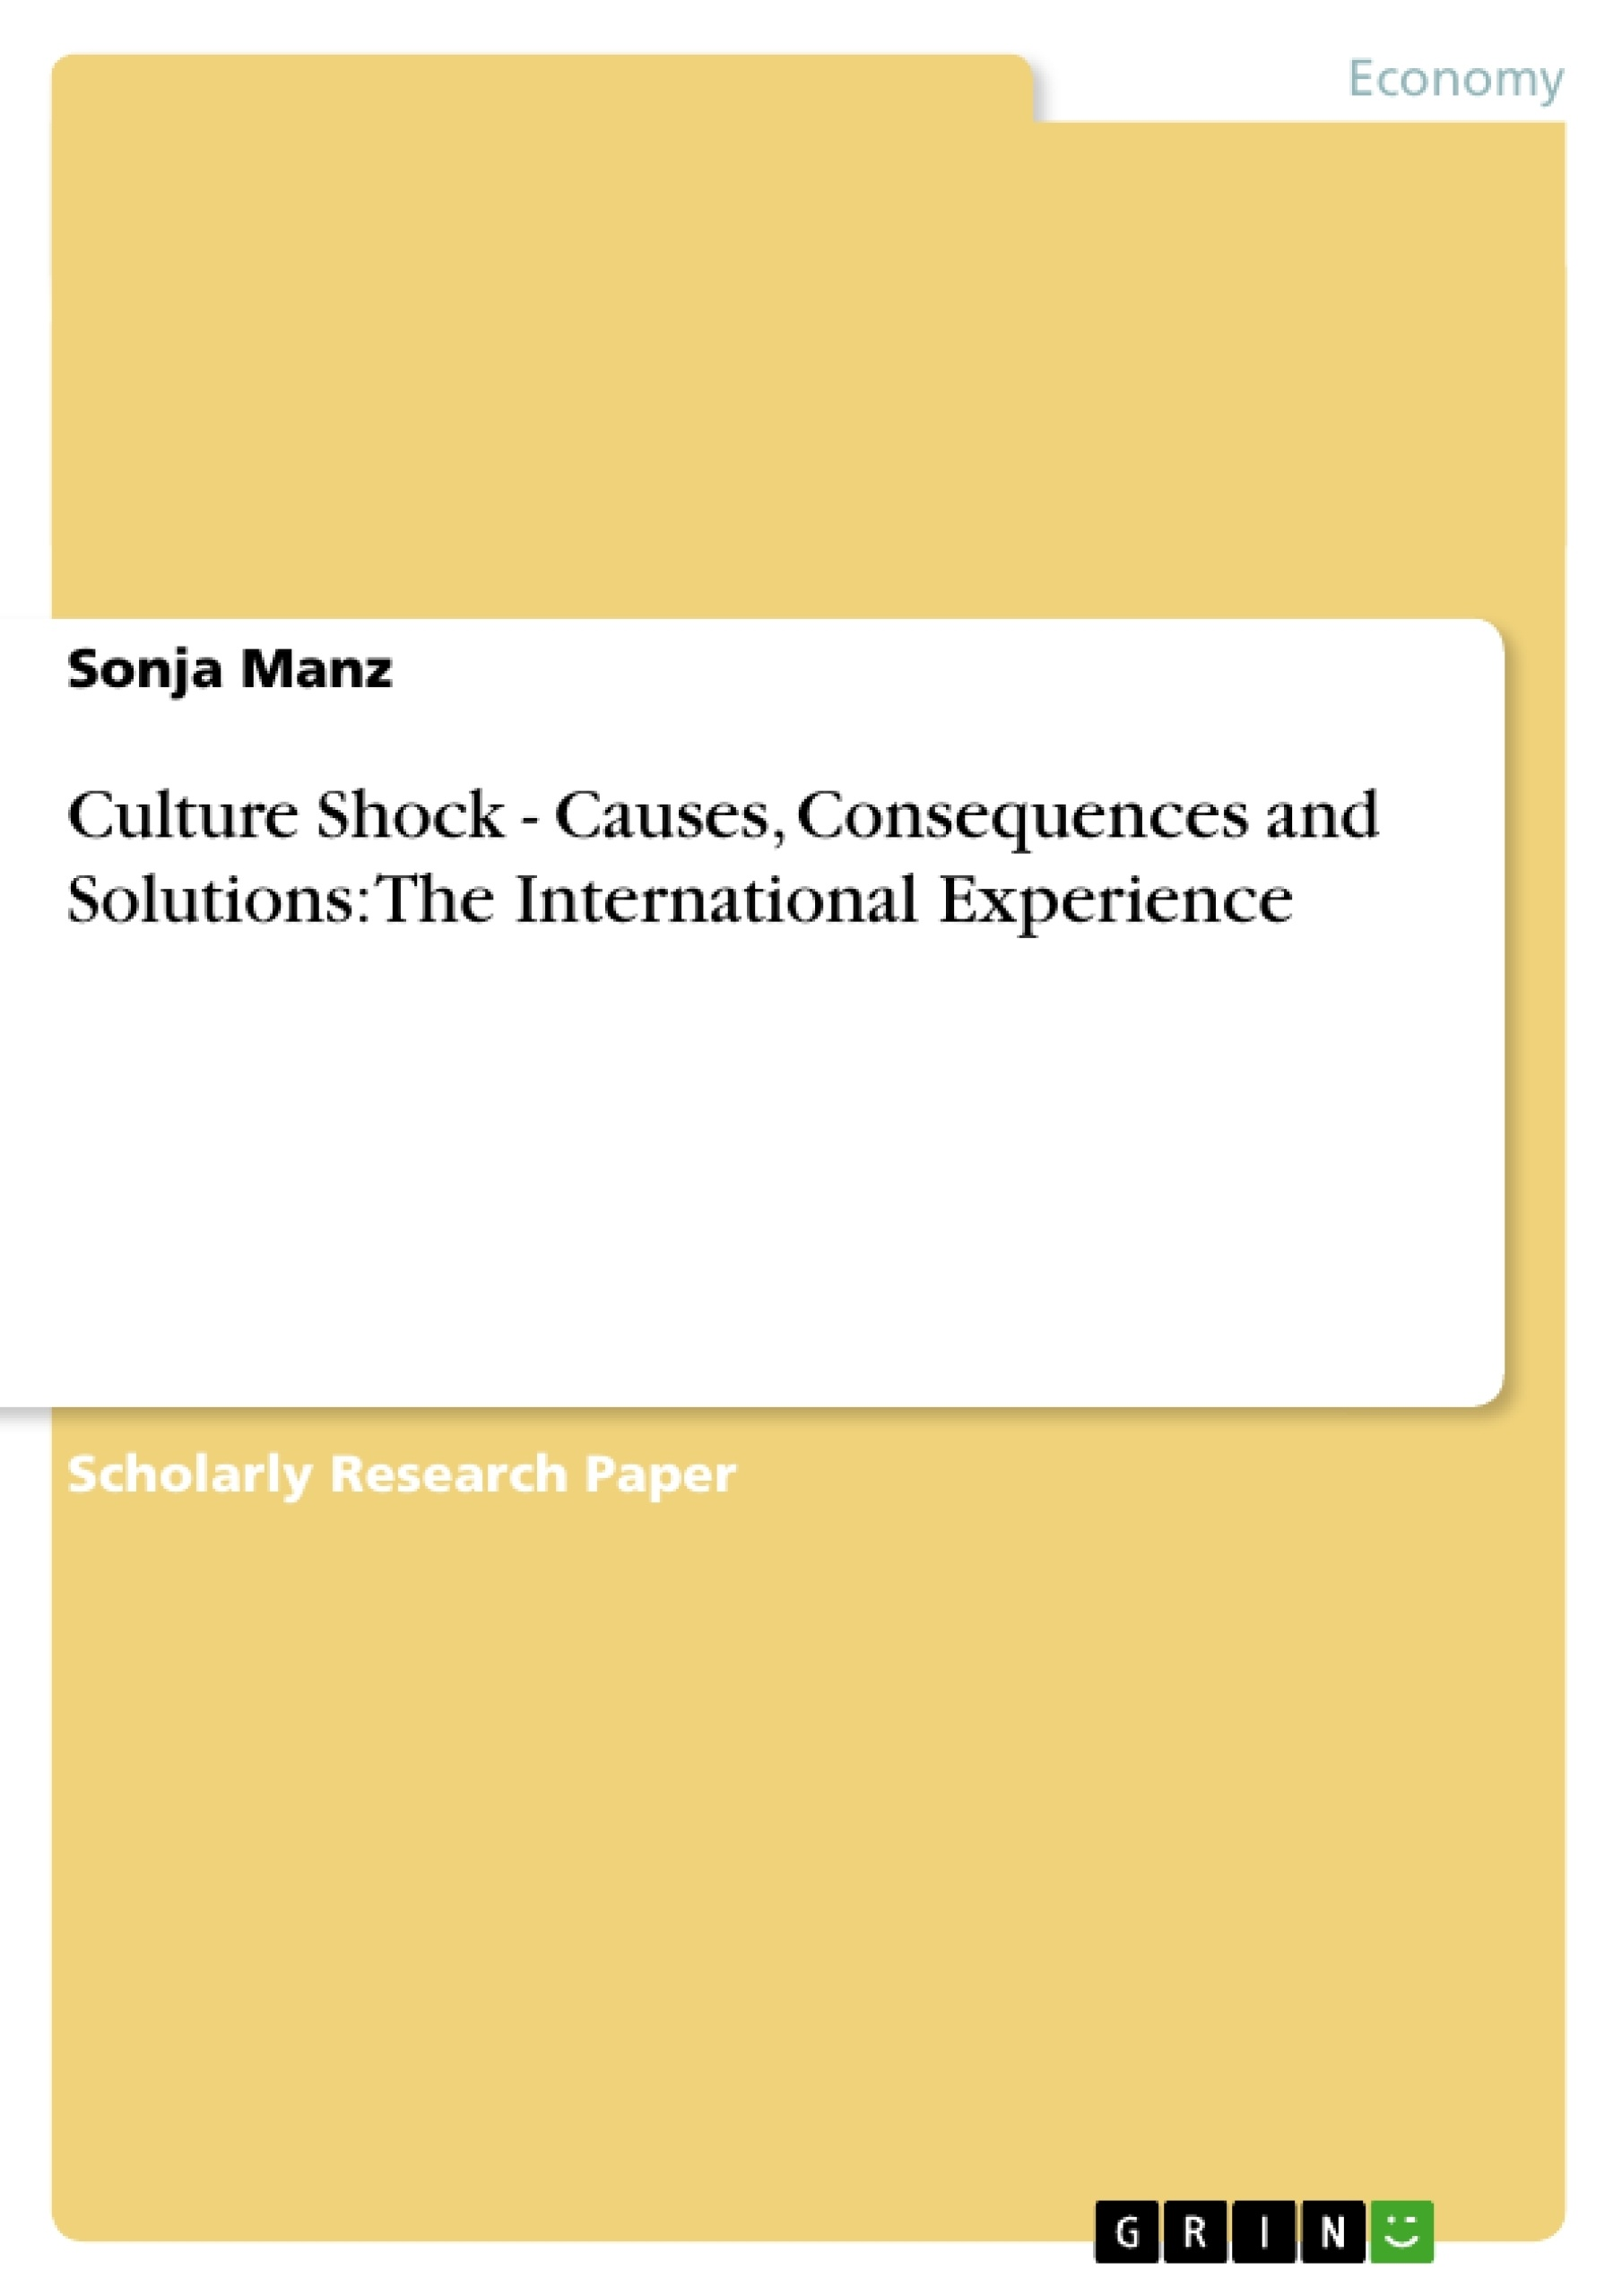 Title: Culture Shock - Causes, Consequences and Solutions: The International Experience